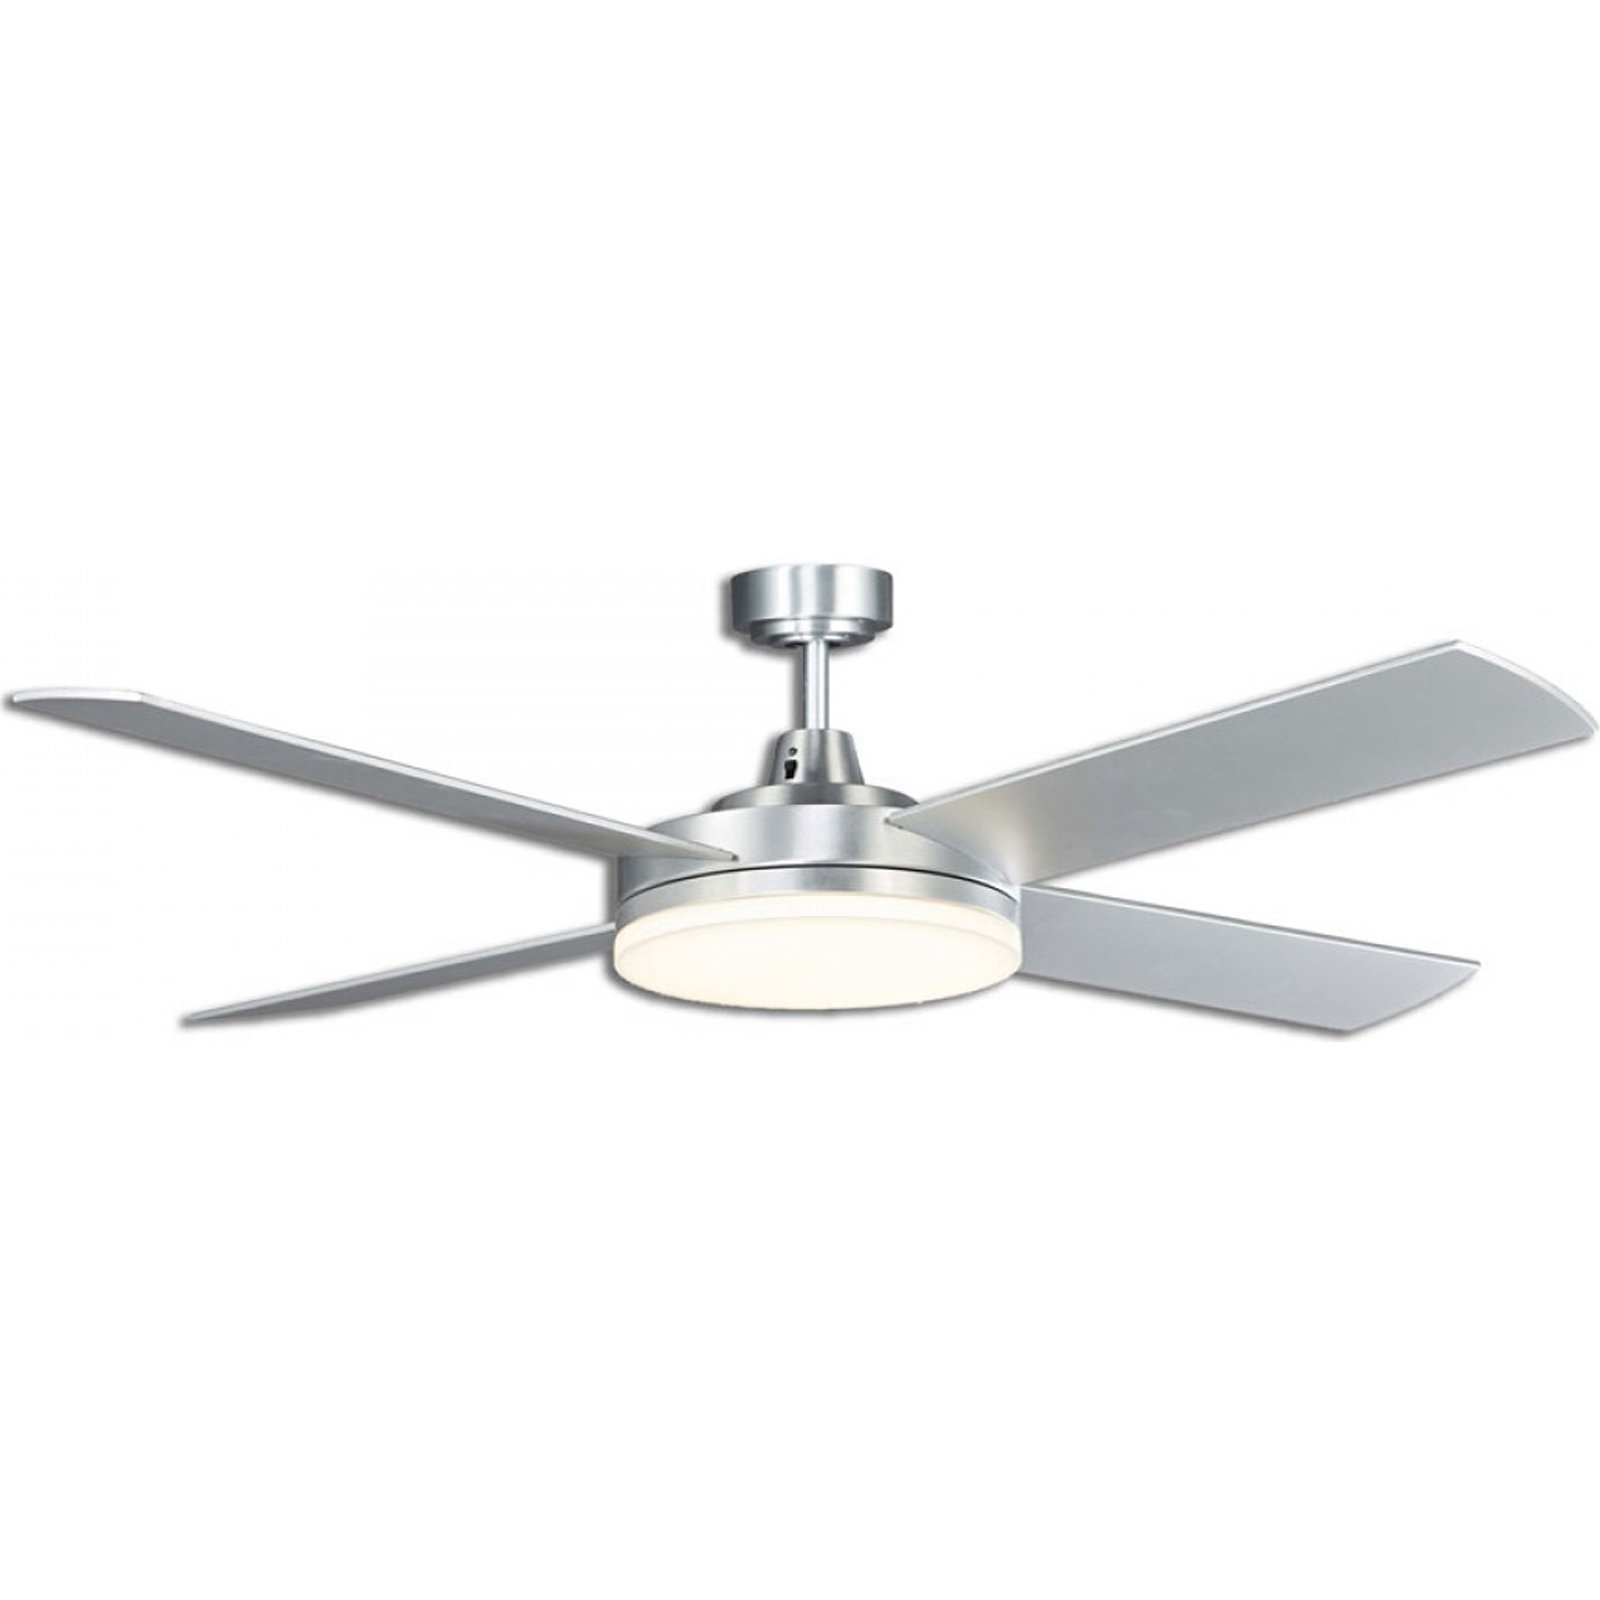 Low Profile Outdoor Ceiling Fan With Led Light | Taraba Home Review Within Outdoor Ceiling Fan Lights (#8 of 15)